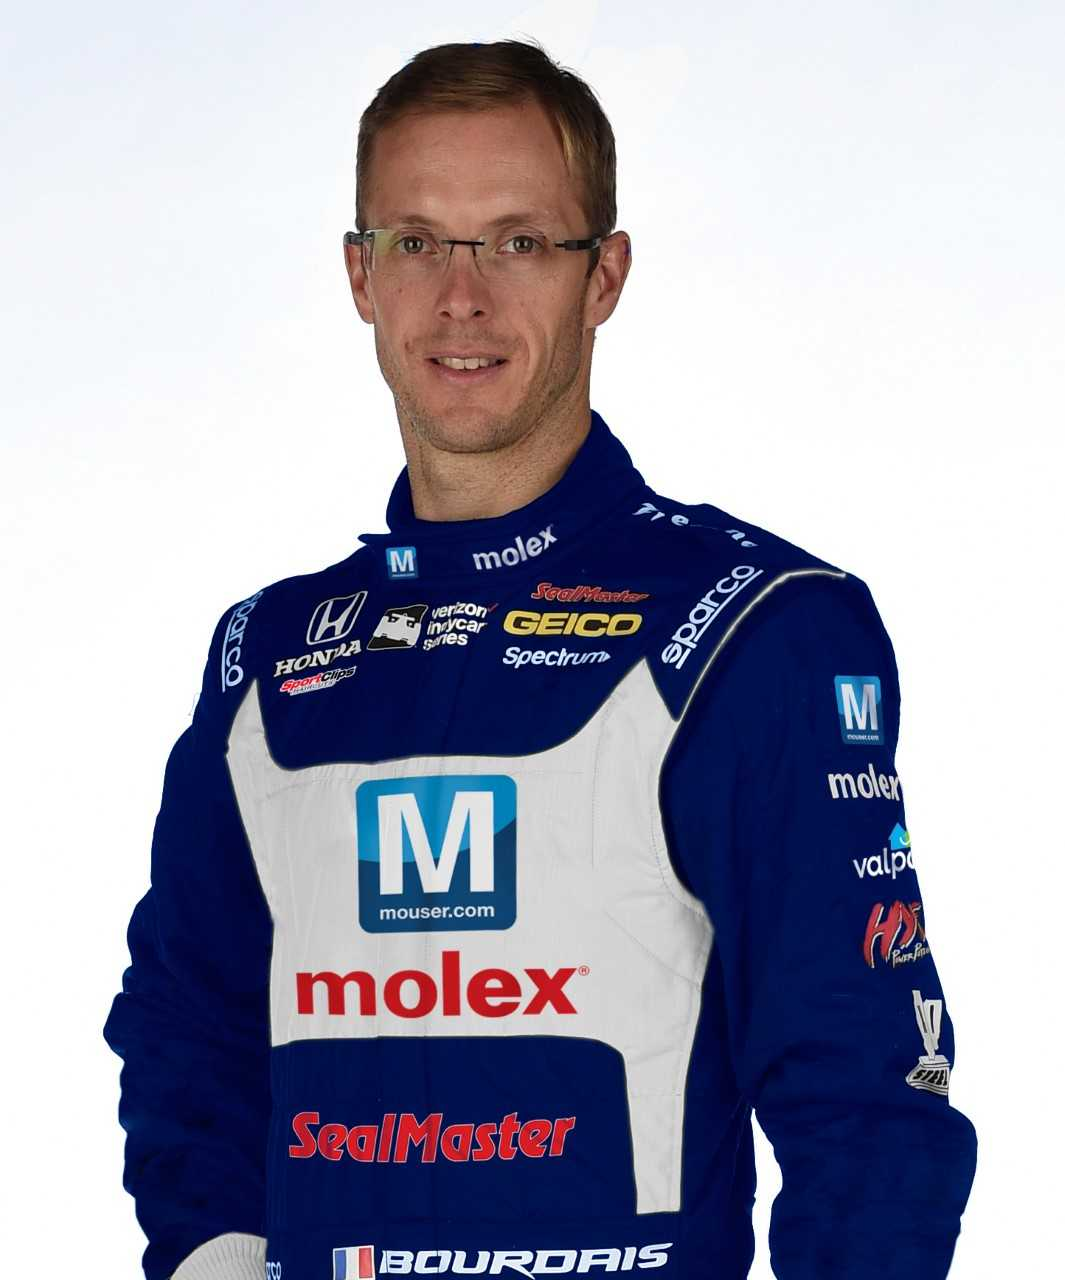 bourdais Pete Shepherd